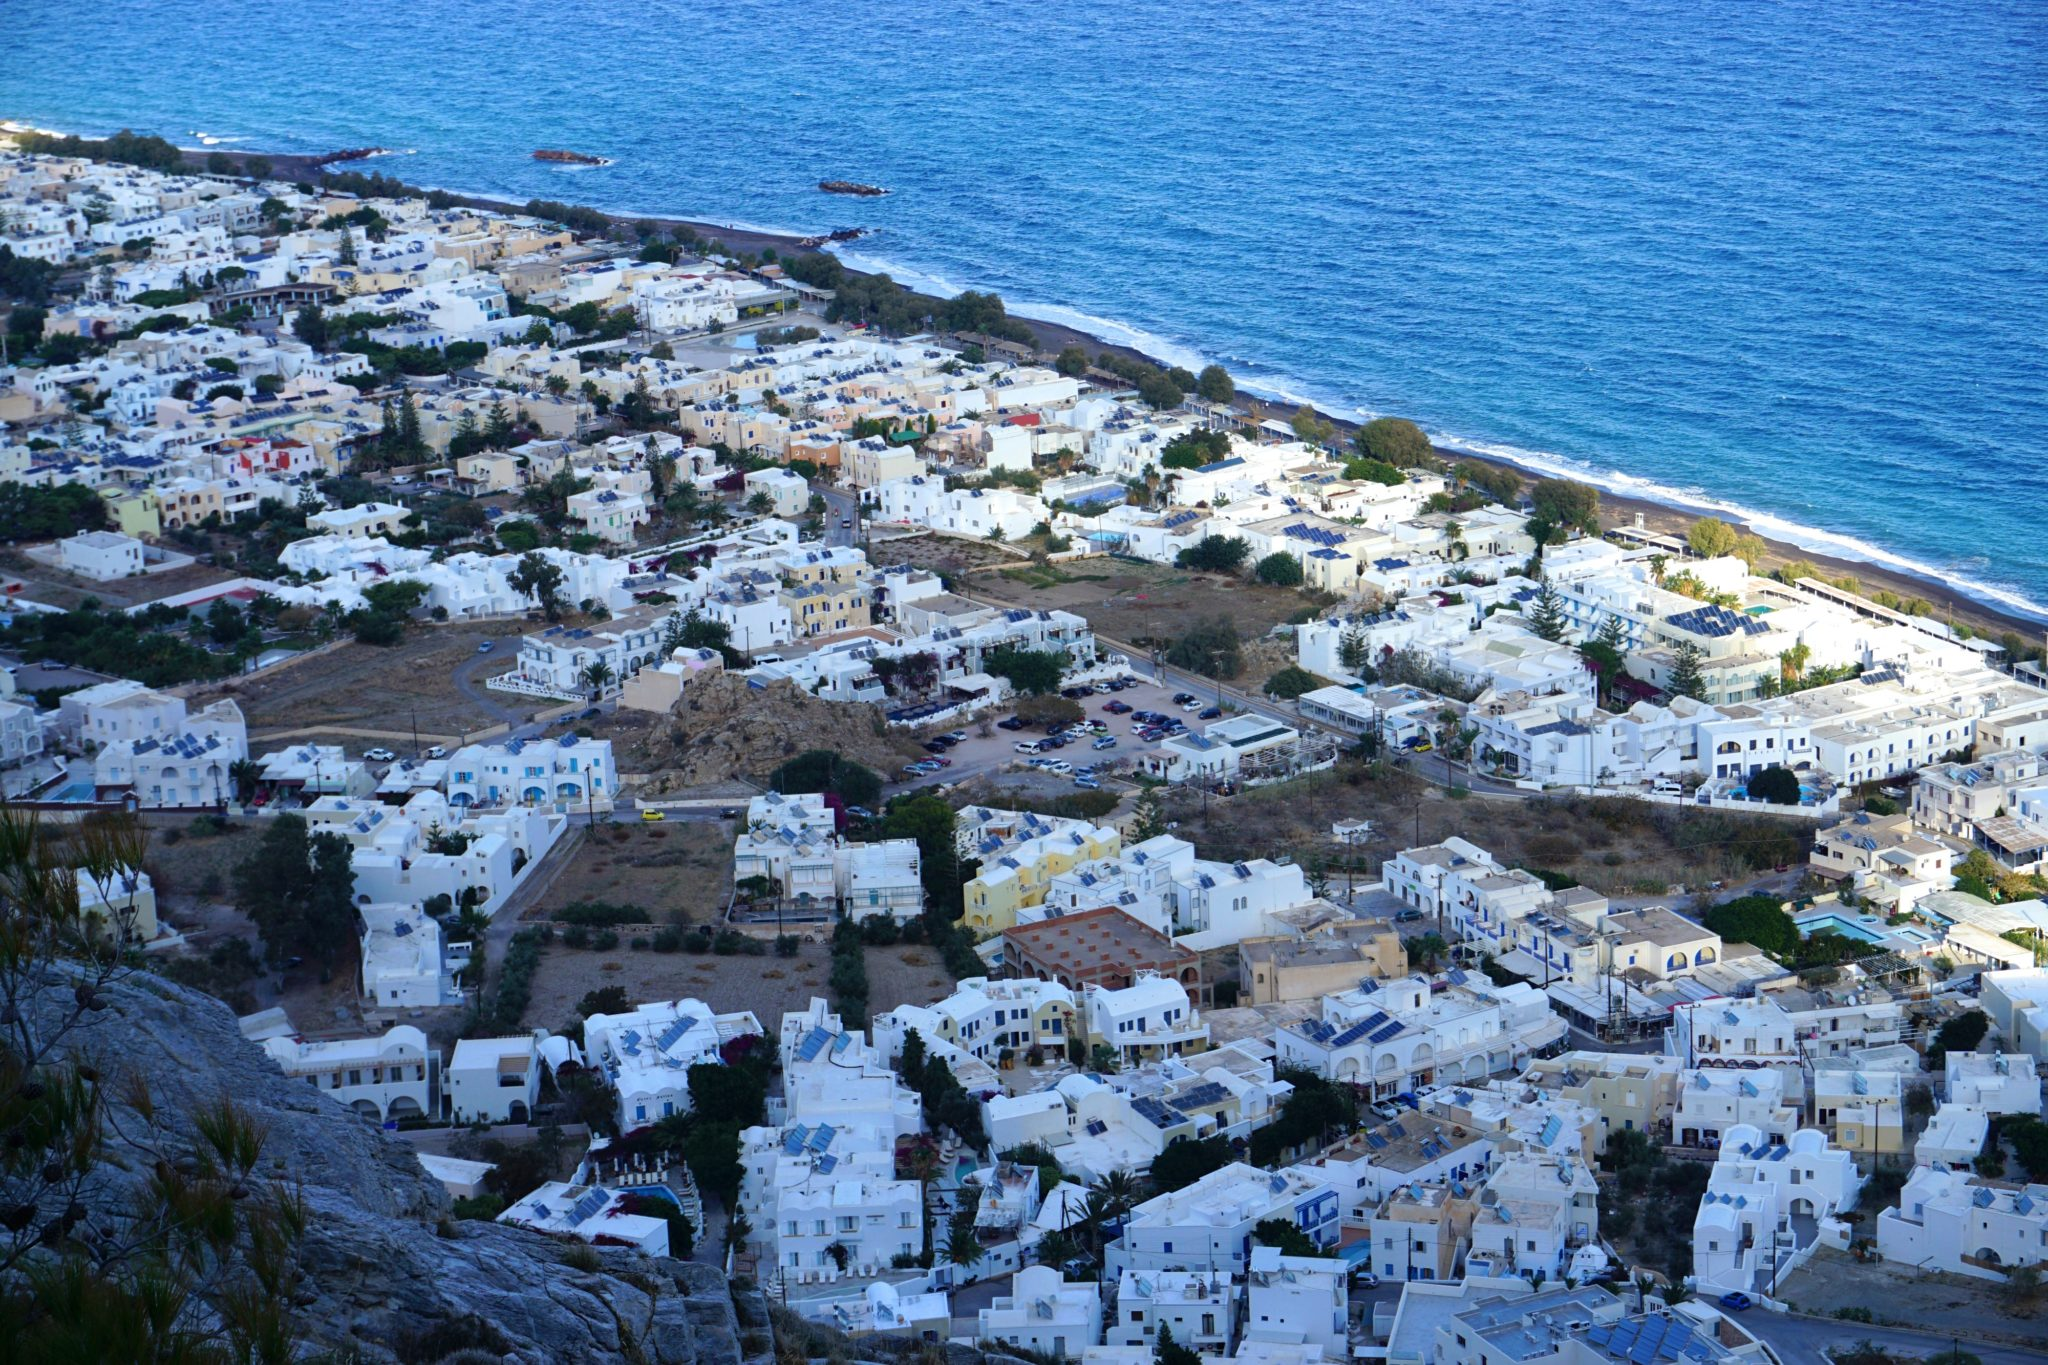 A beautiful view of the village of Kamari on the way down from Ancient Thera, Santorini.